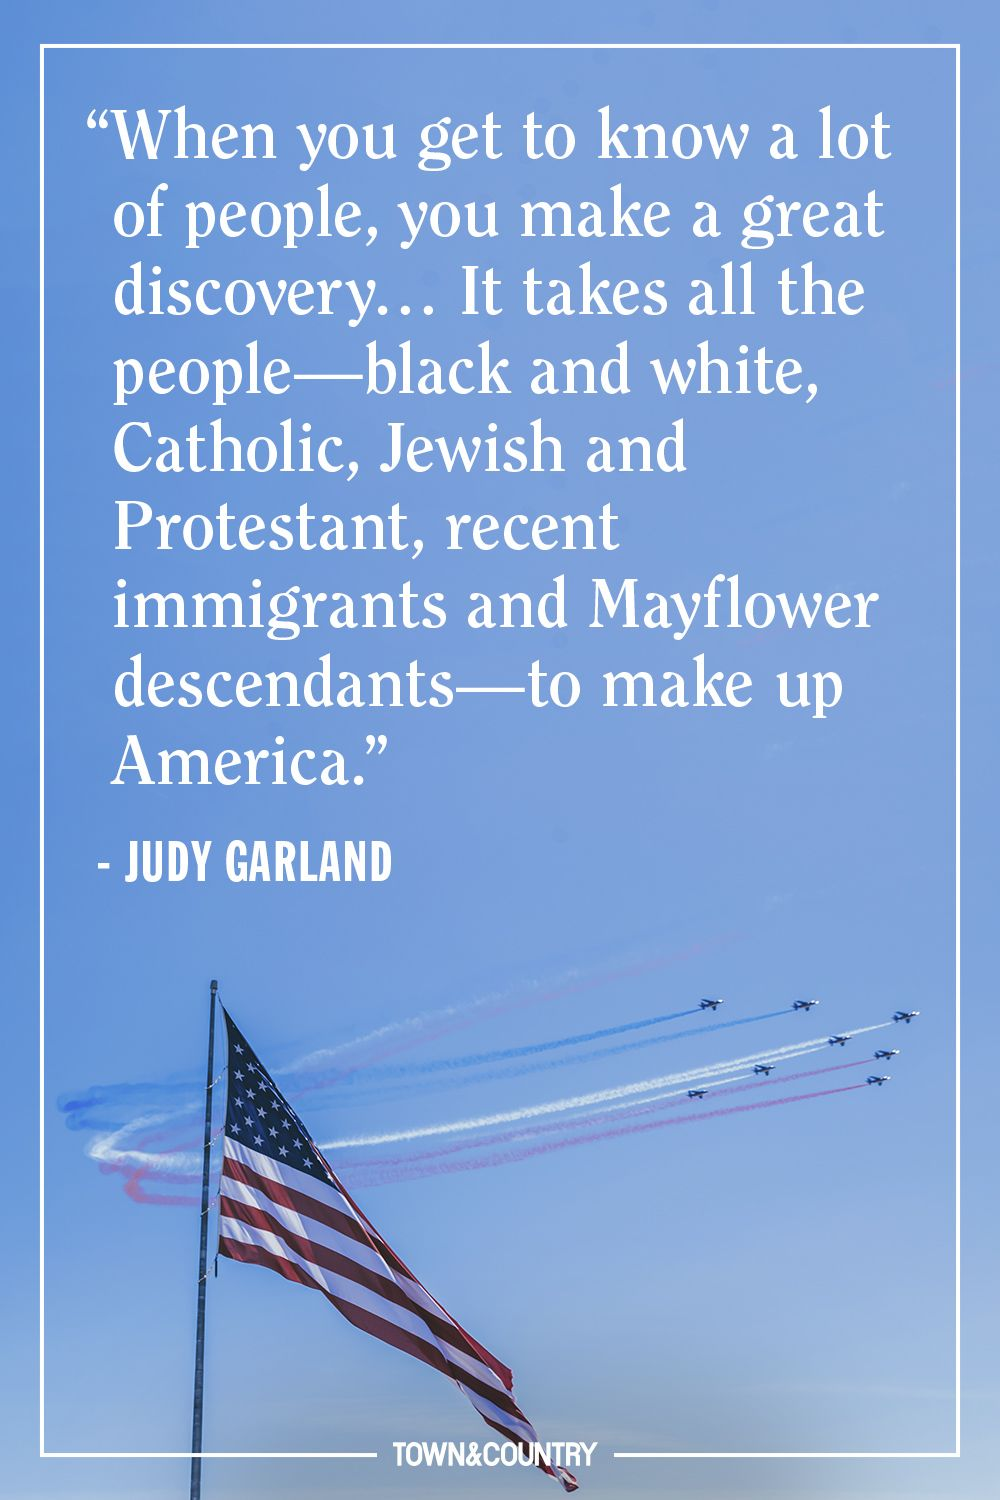 """""""When you get to know a lot of people, you make a great discovery… It takes all the people—black and white, Catholic, Jewish and Protestant, recent immigrants and Mayflower descendants—to make up America."""" — Judy Garland"""